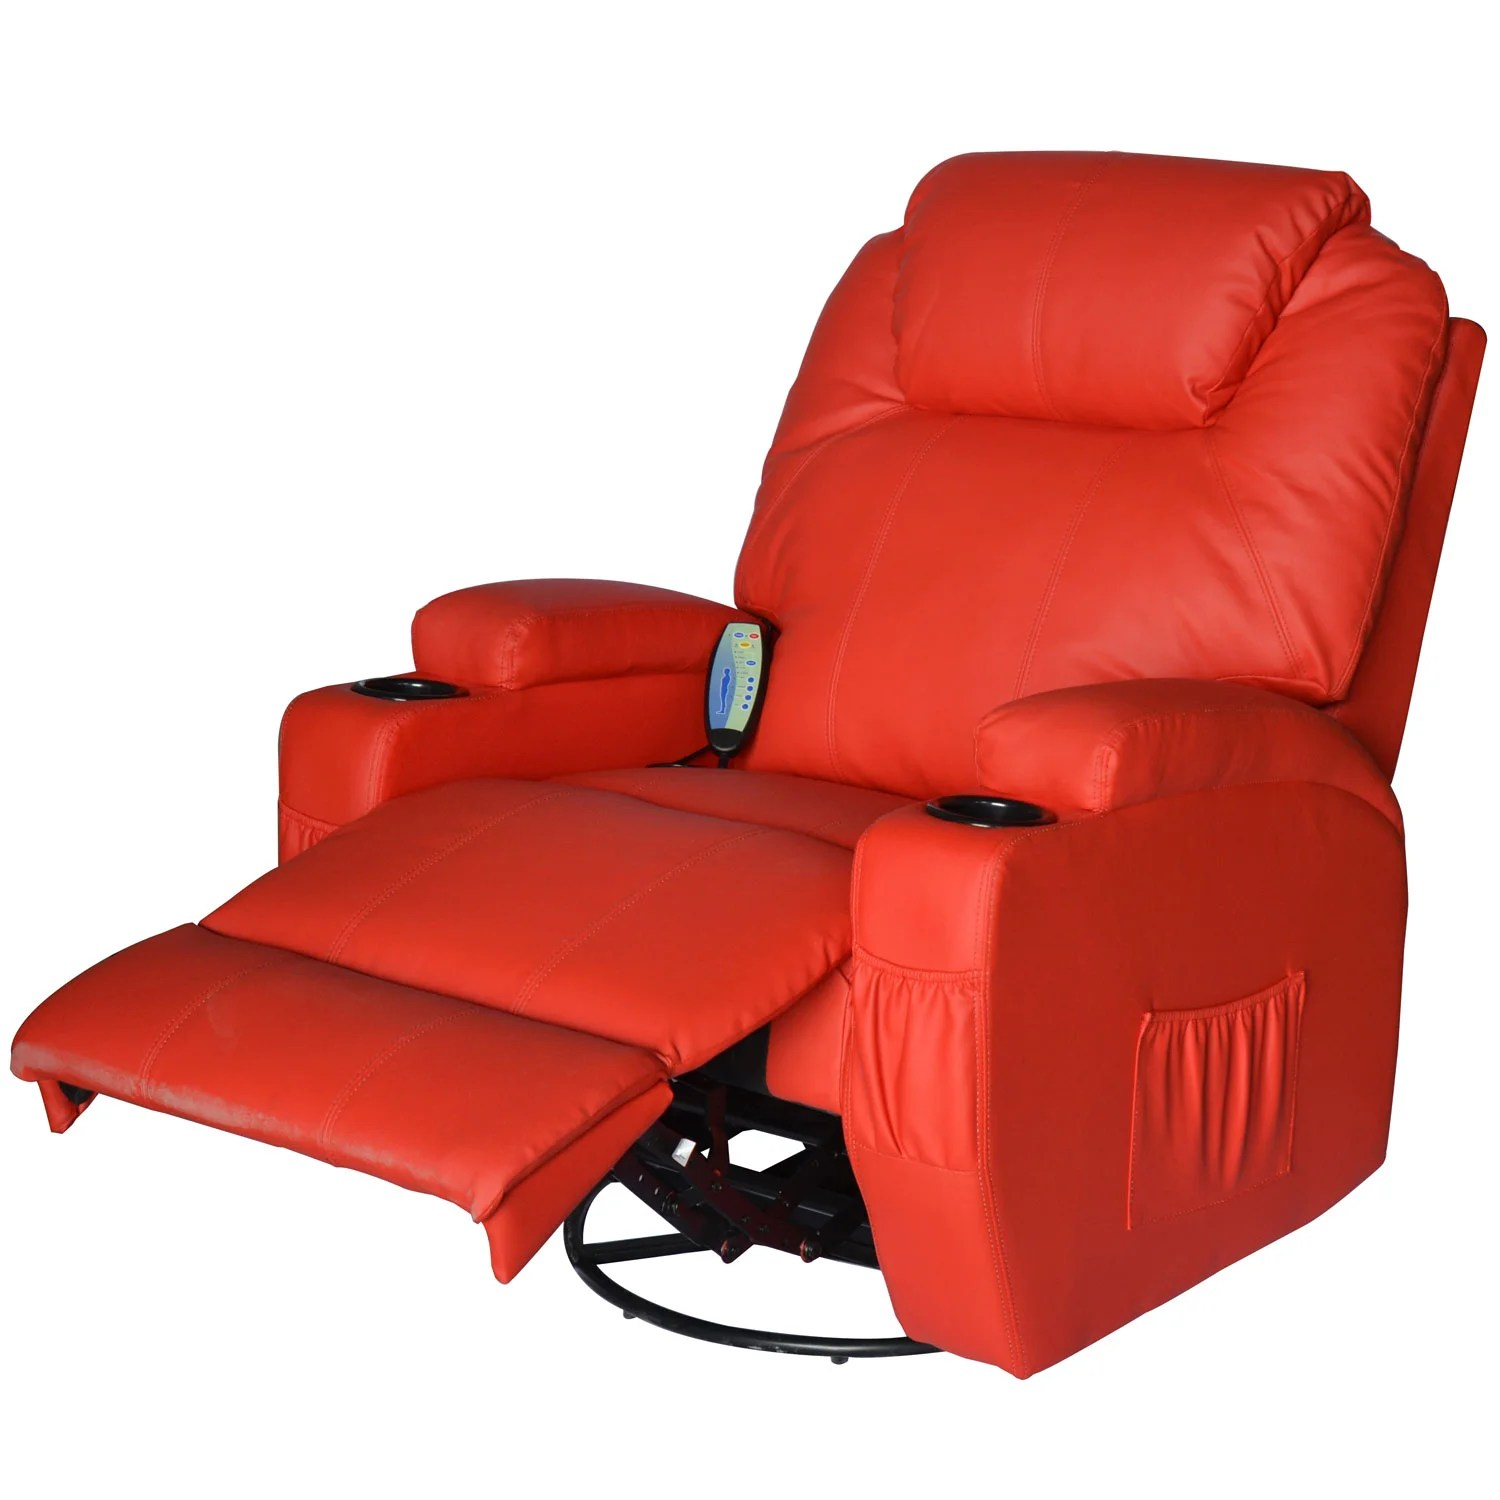 Vibrating Gaming Chair Outsunny Homcom Deluxe Heated Vibrating Vinyl Leather